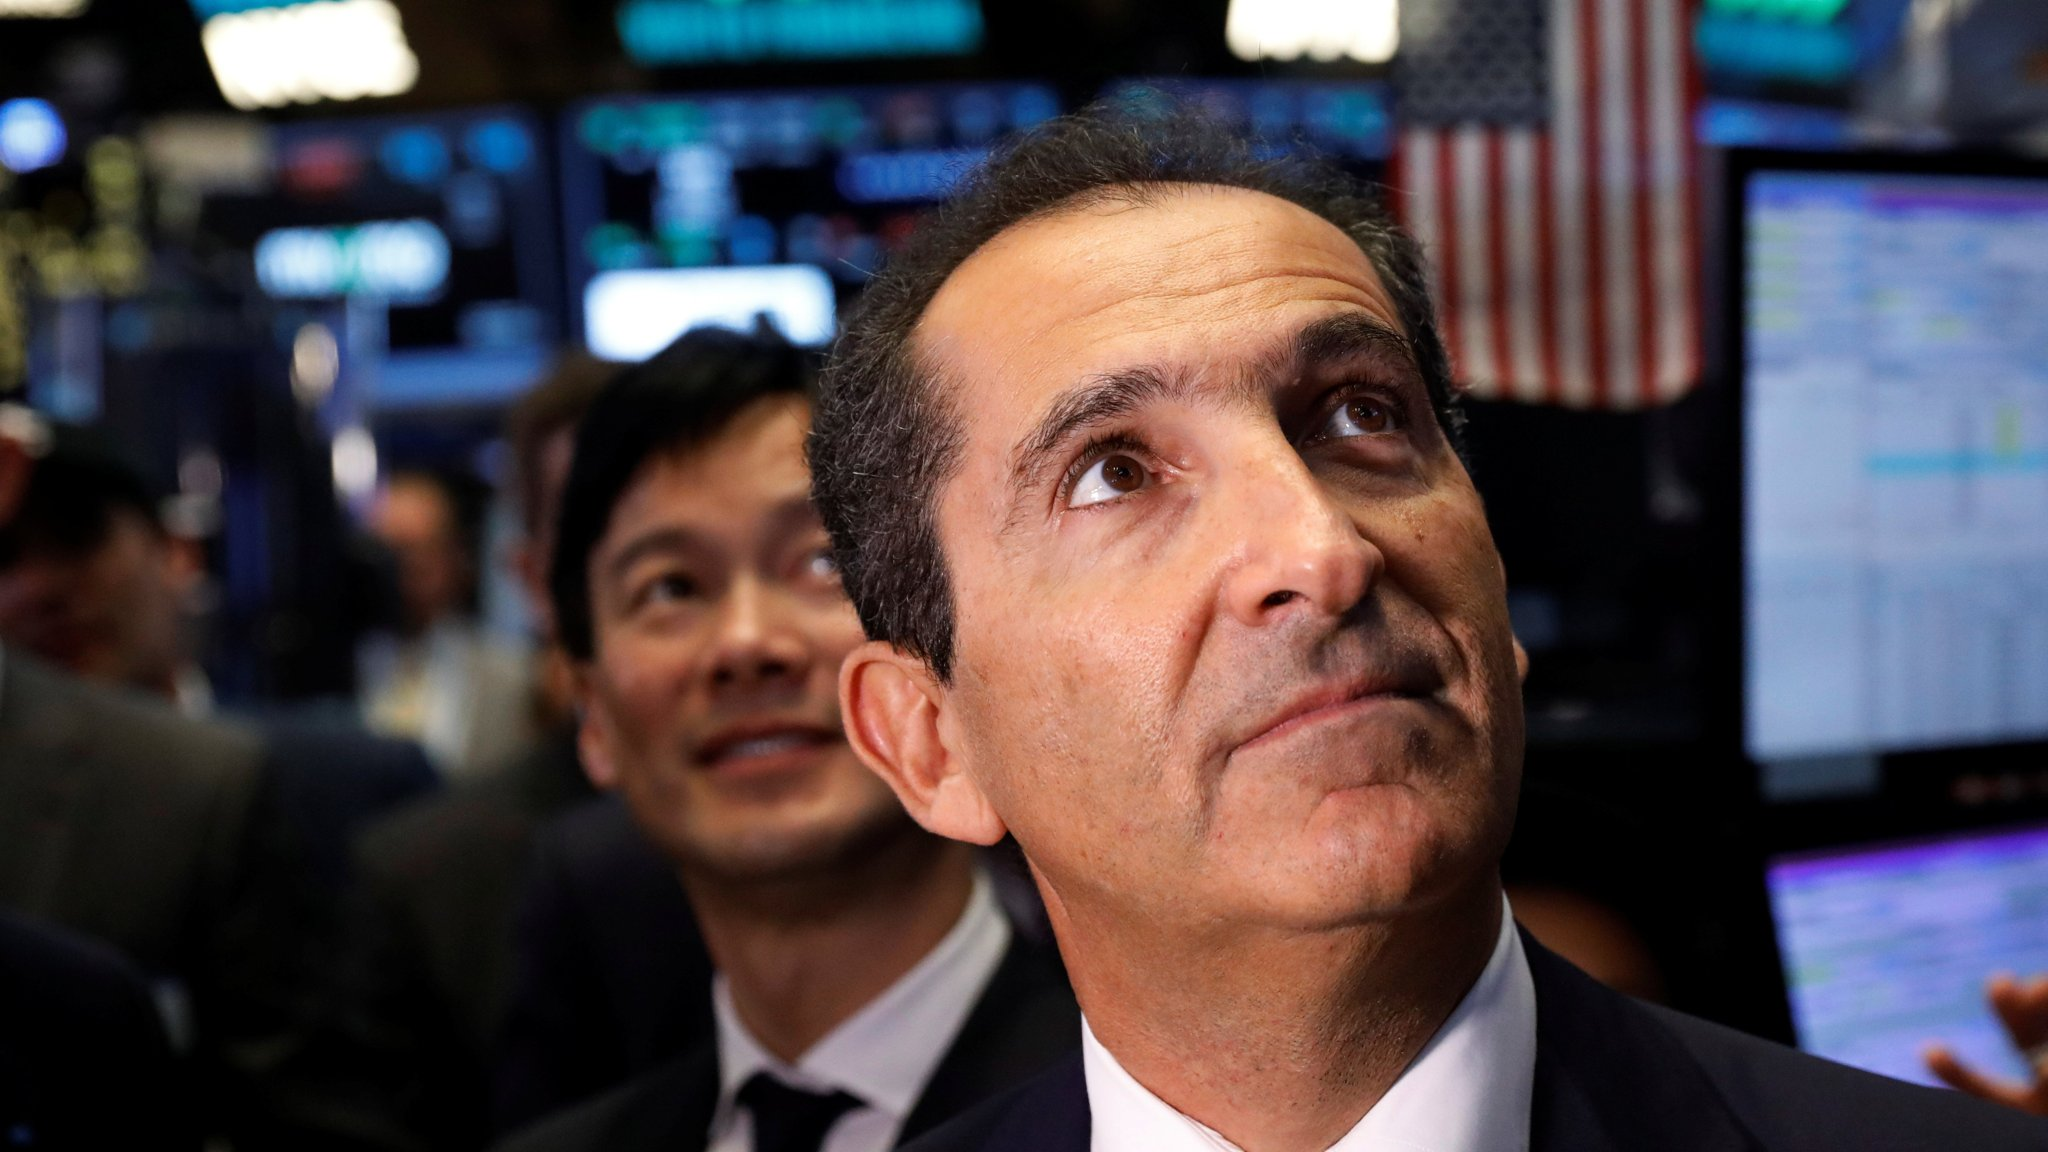 Patrick Drahi Looks To Reboot Altice As His Empire Building Stalls